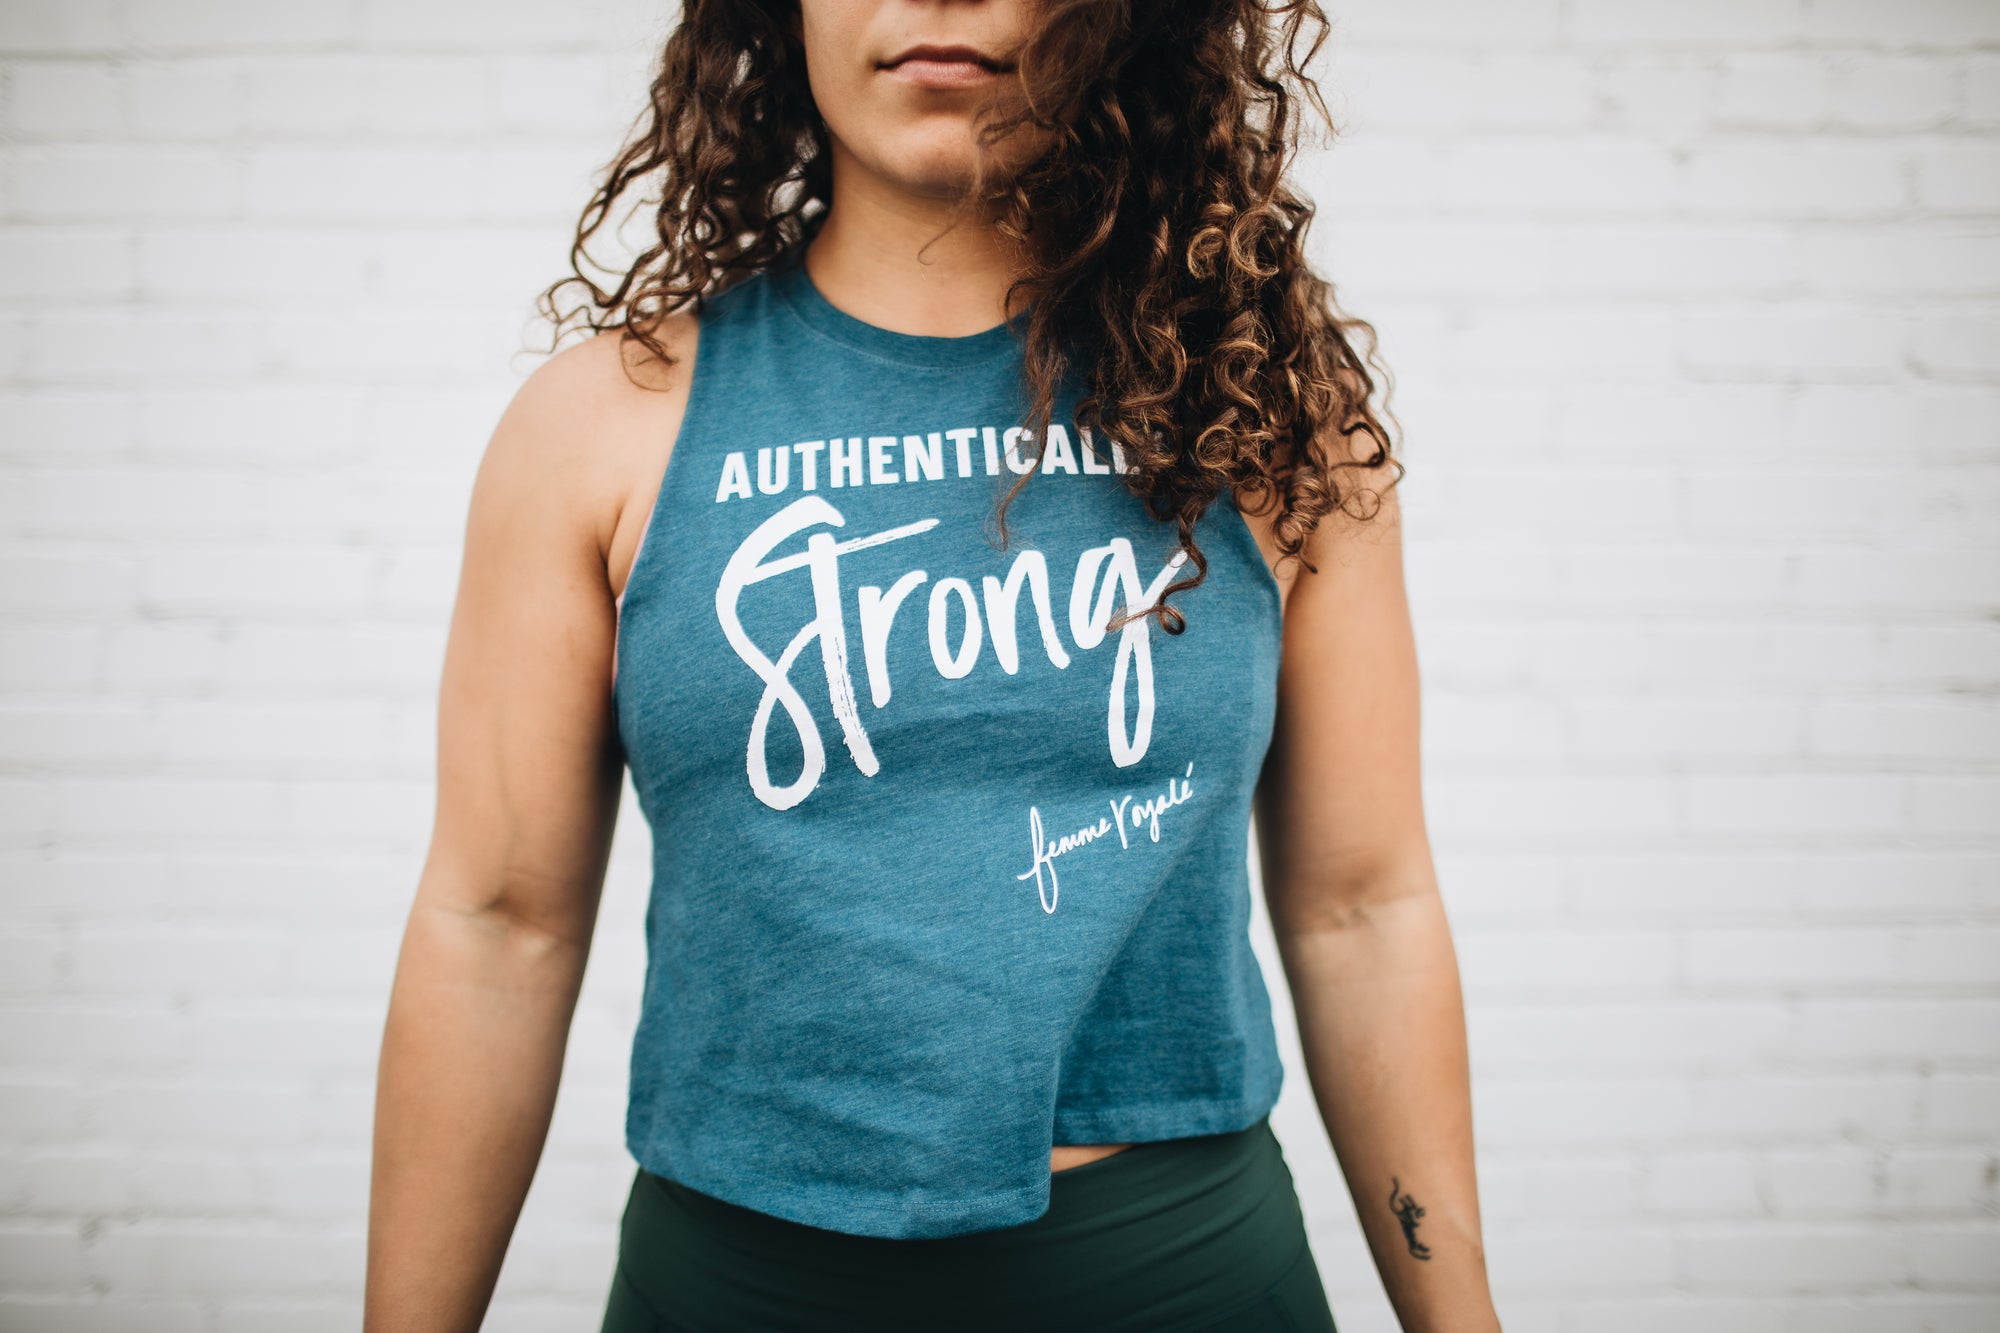 Authentically Strong Crop Tank